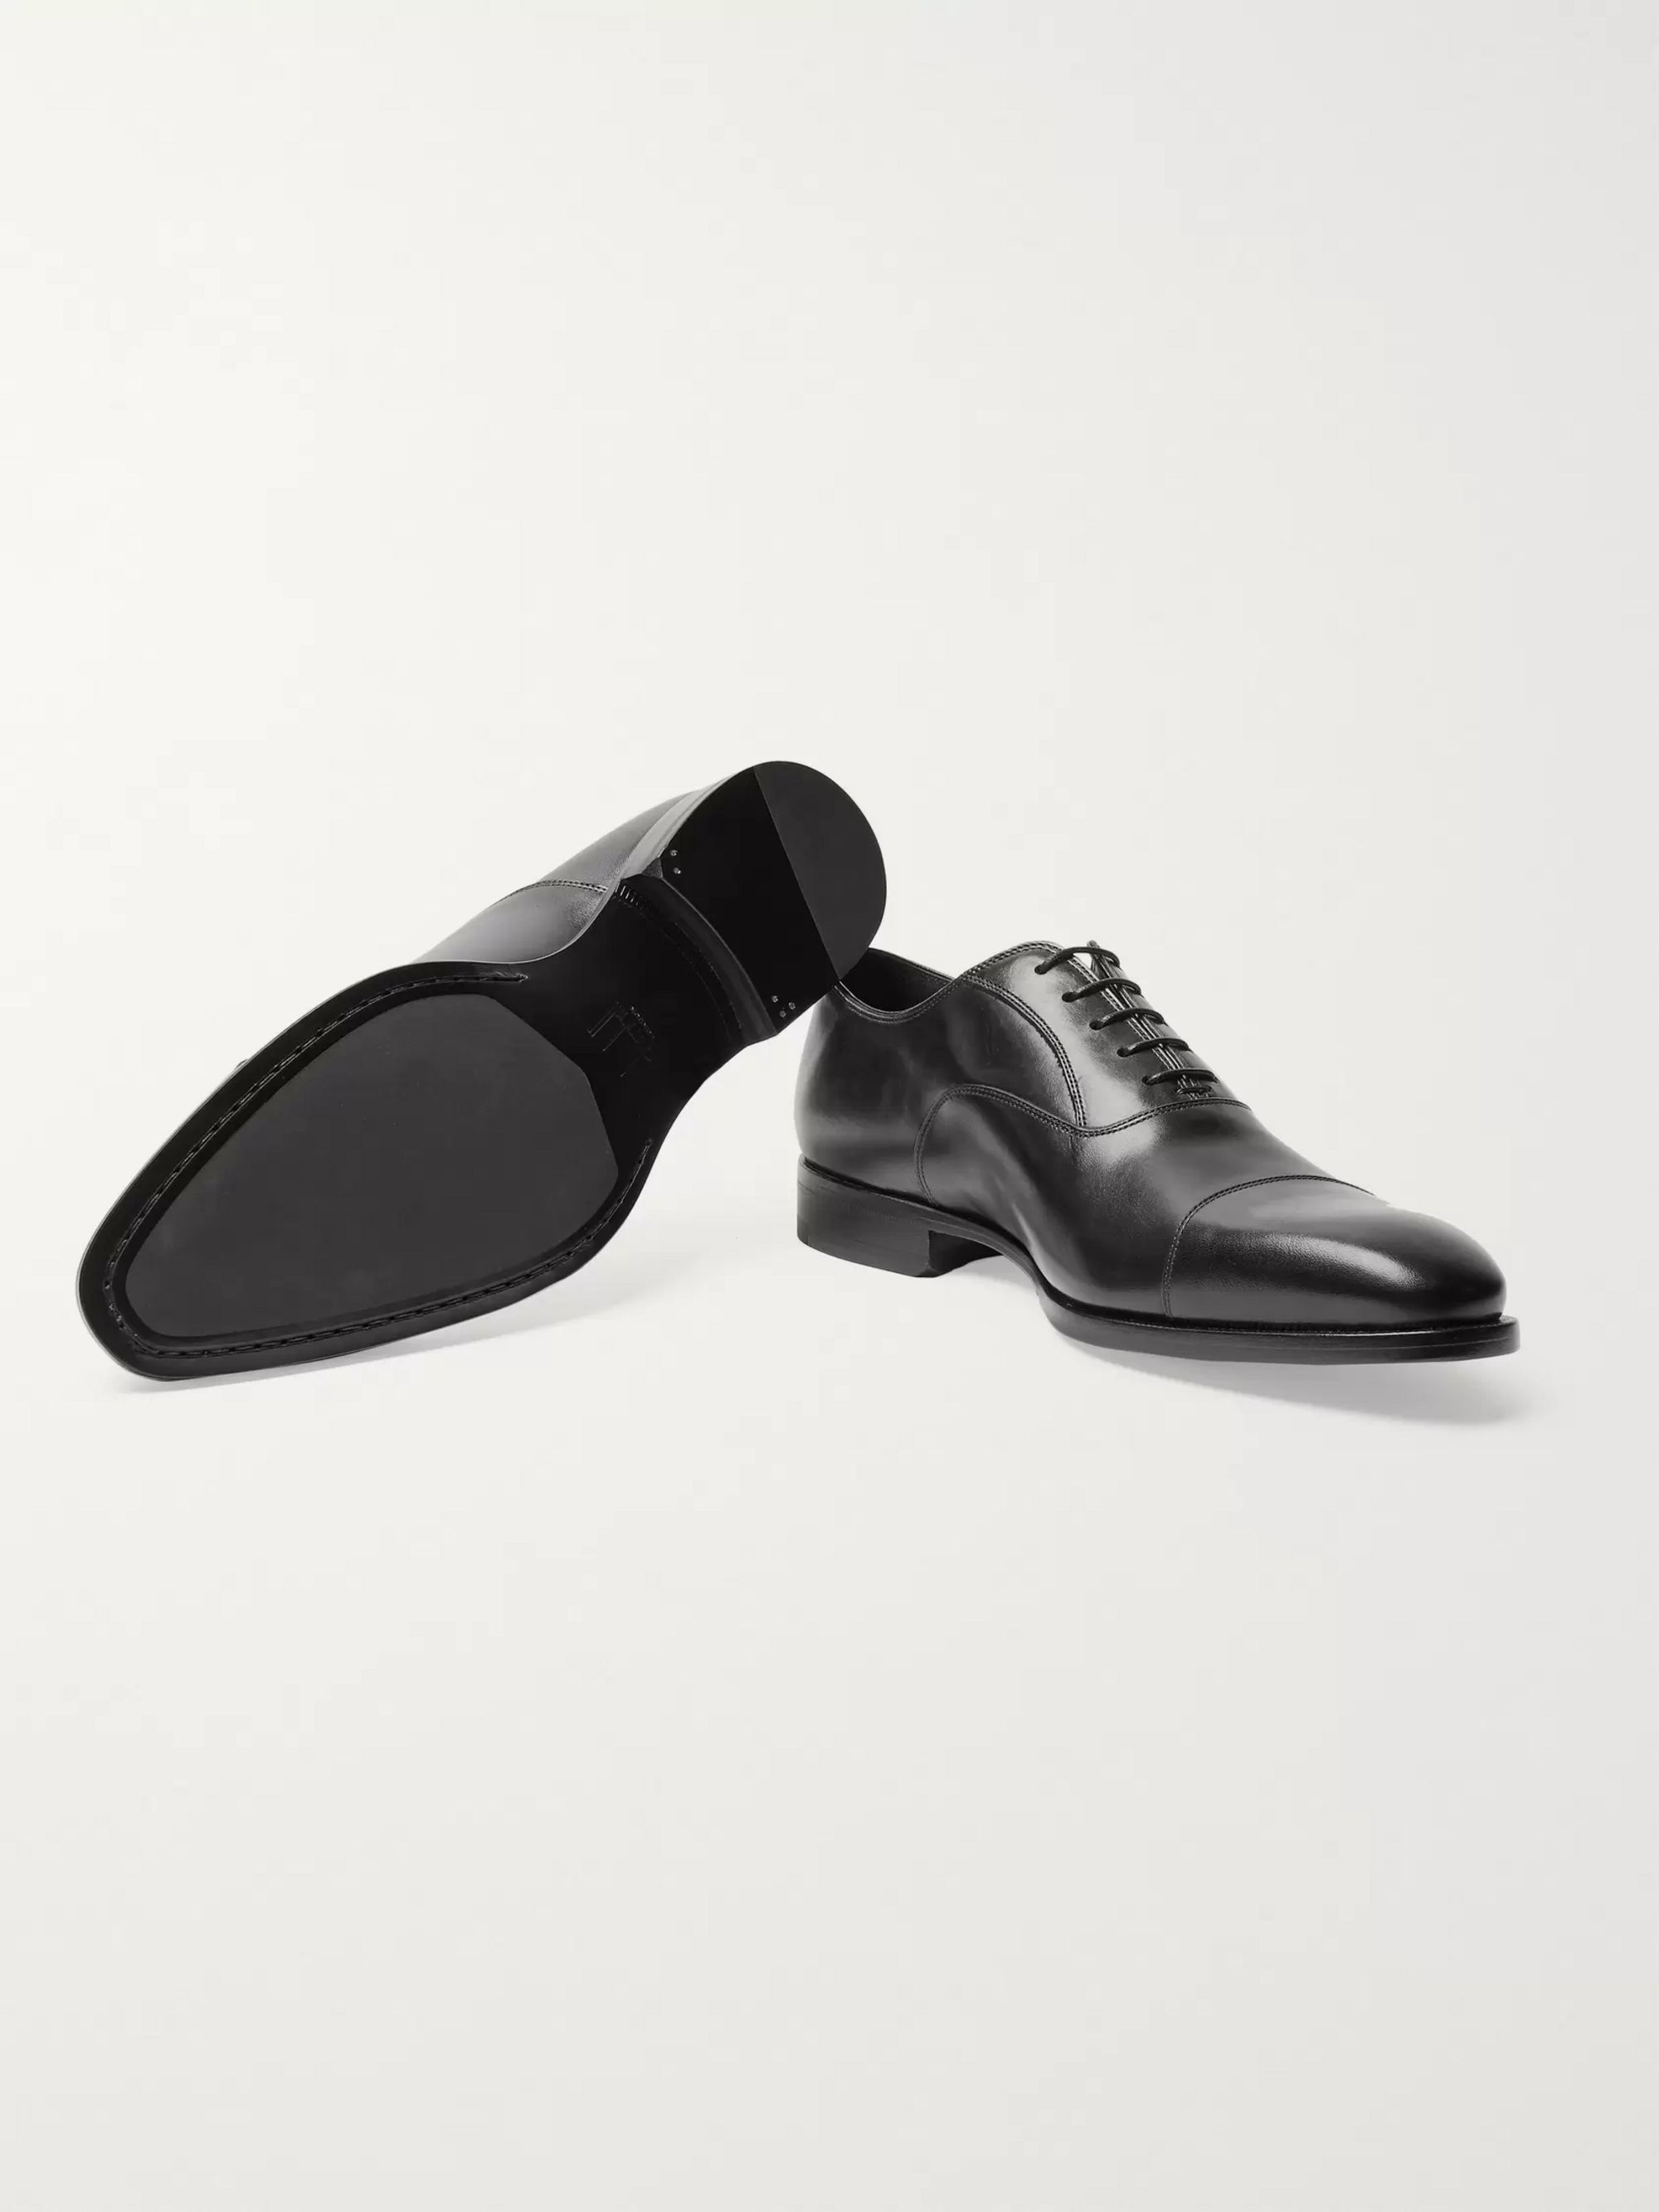 Dunhill Elegant City Leather Oxford Shoes